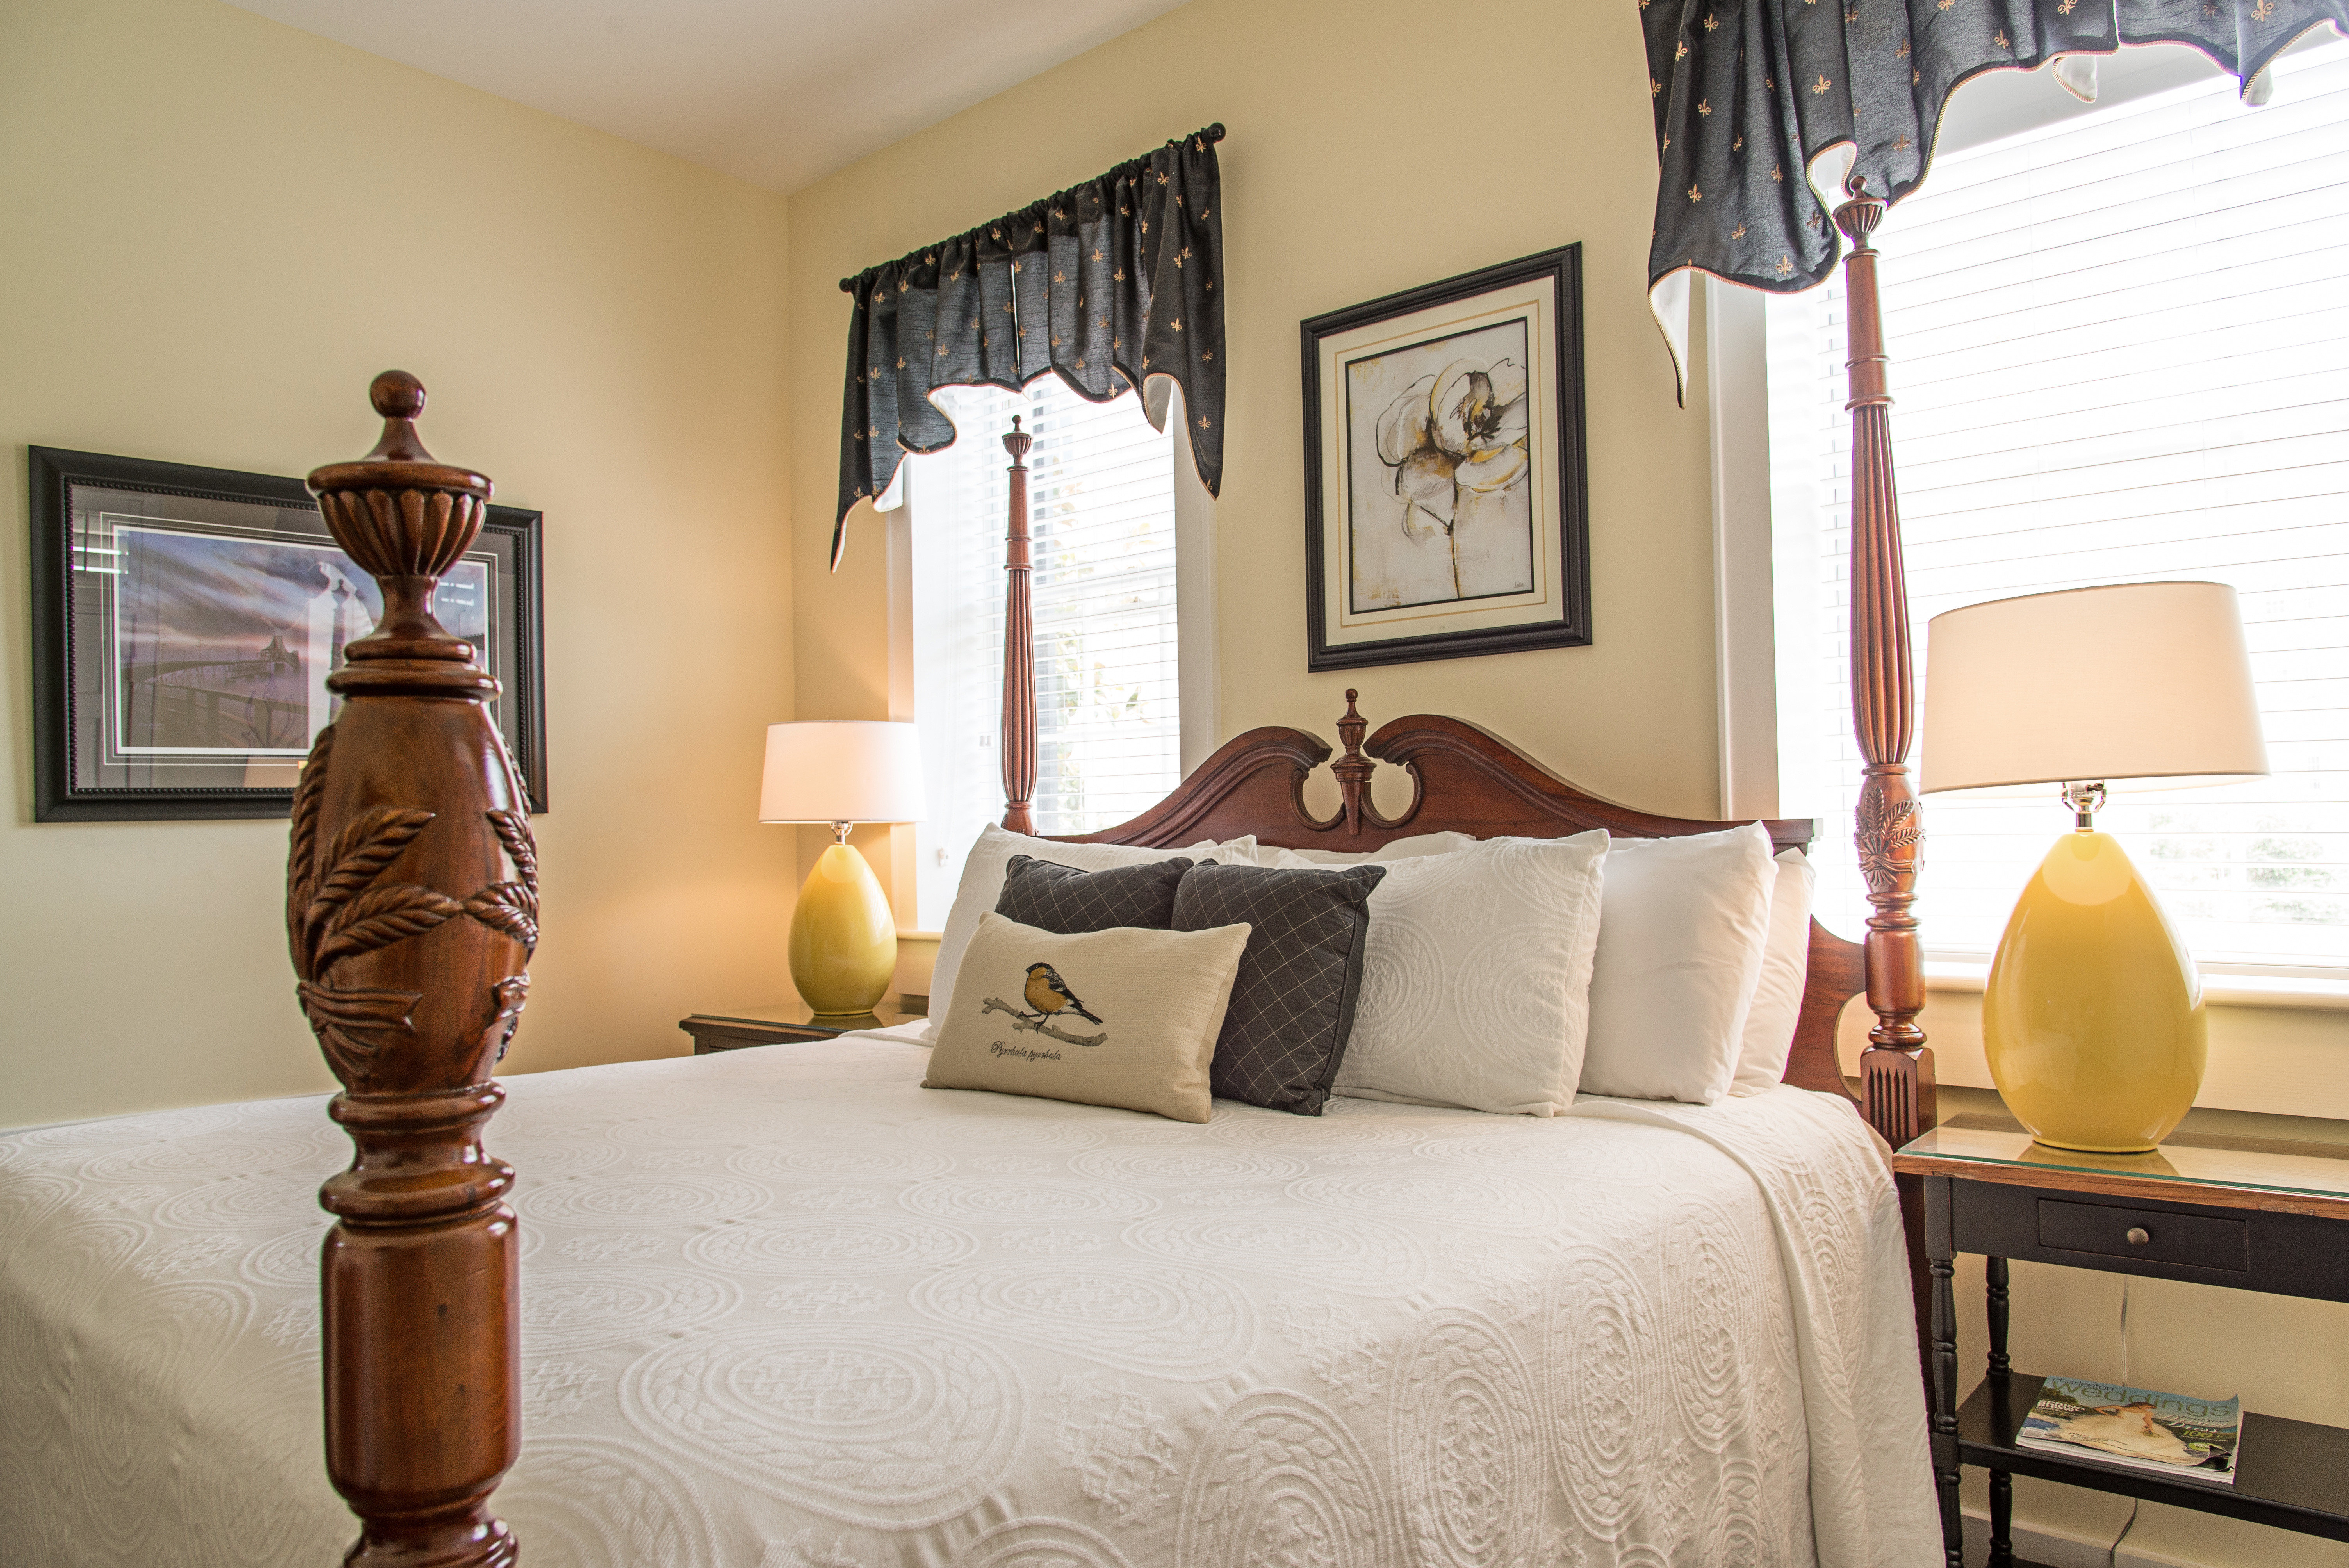 Bedroom Country Historic Inn sofa property home living room cottage Suite lamp nice curtain